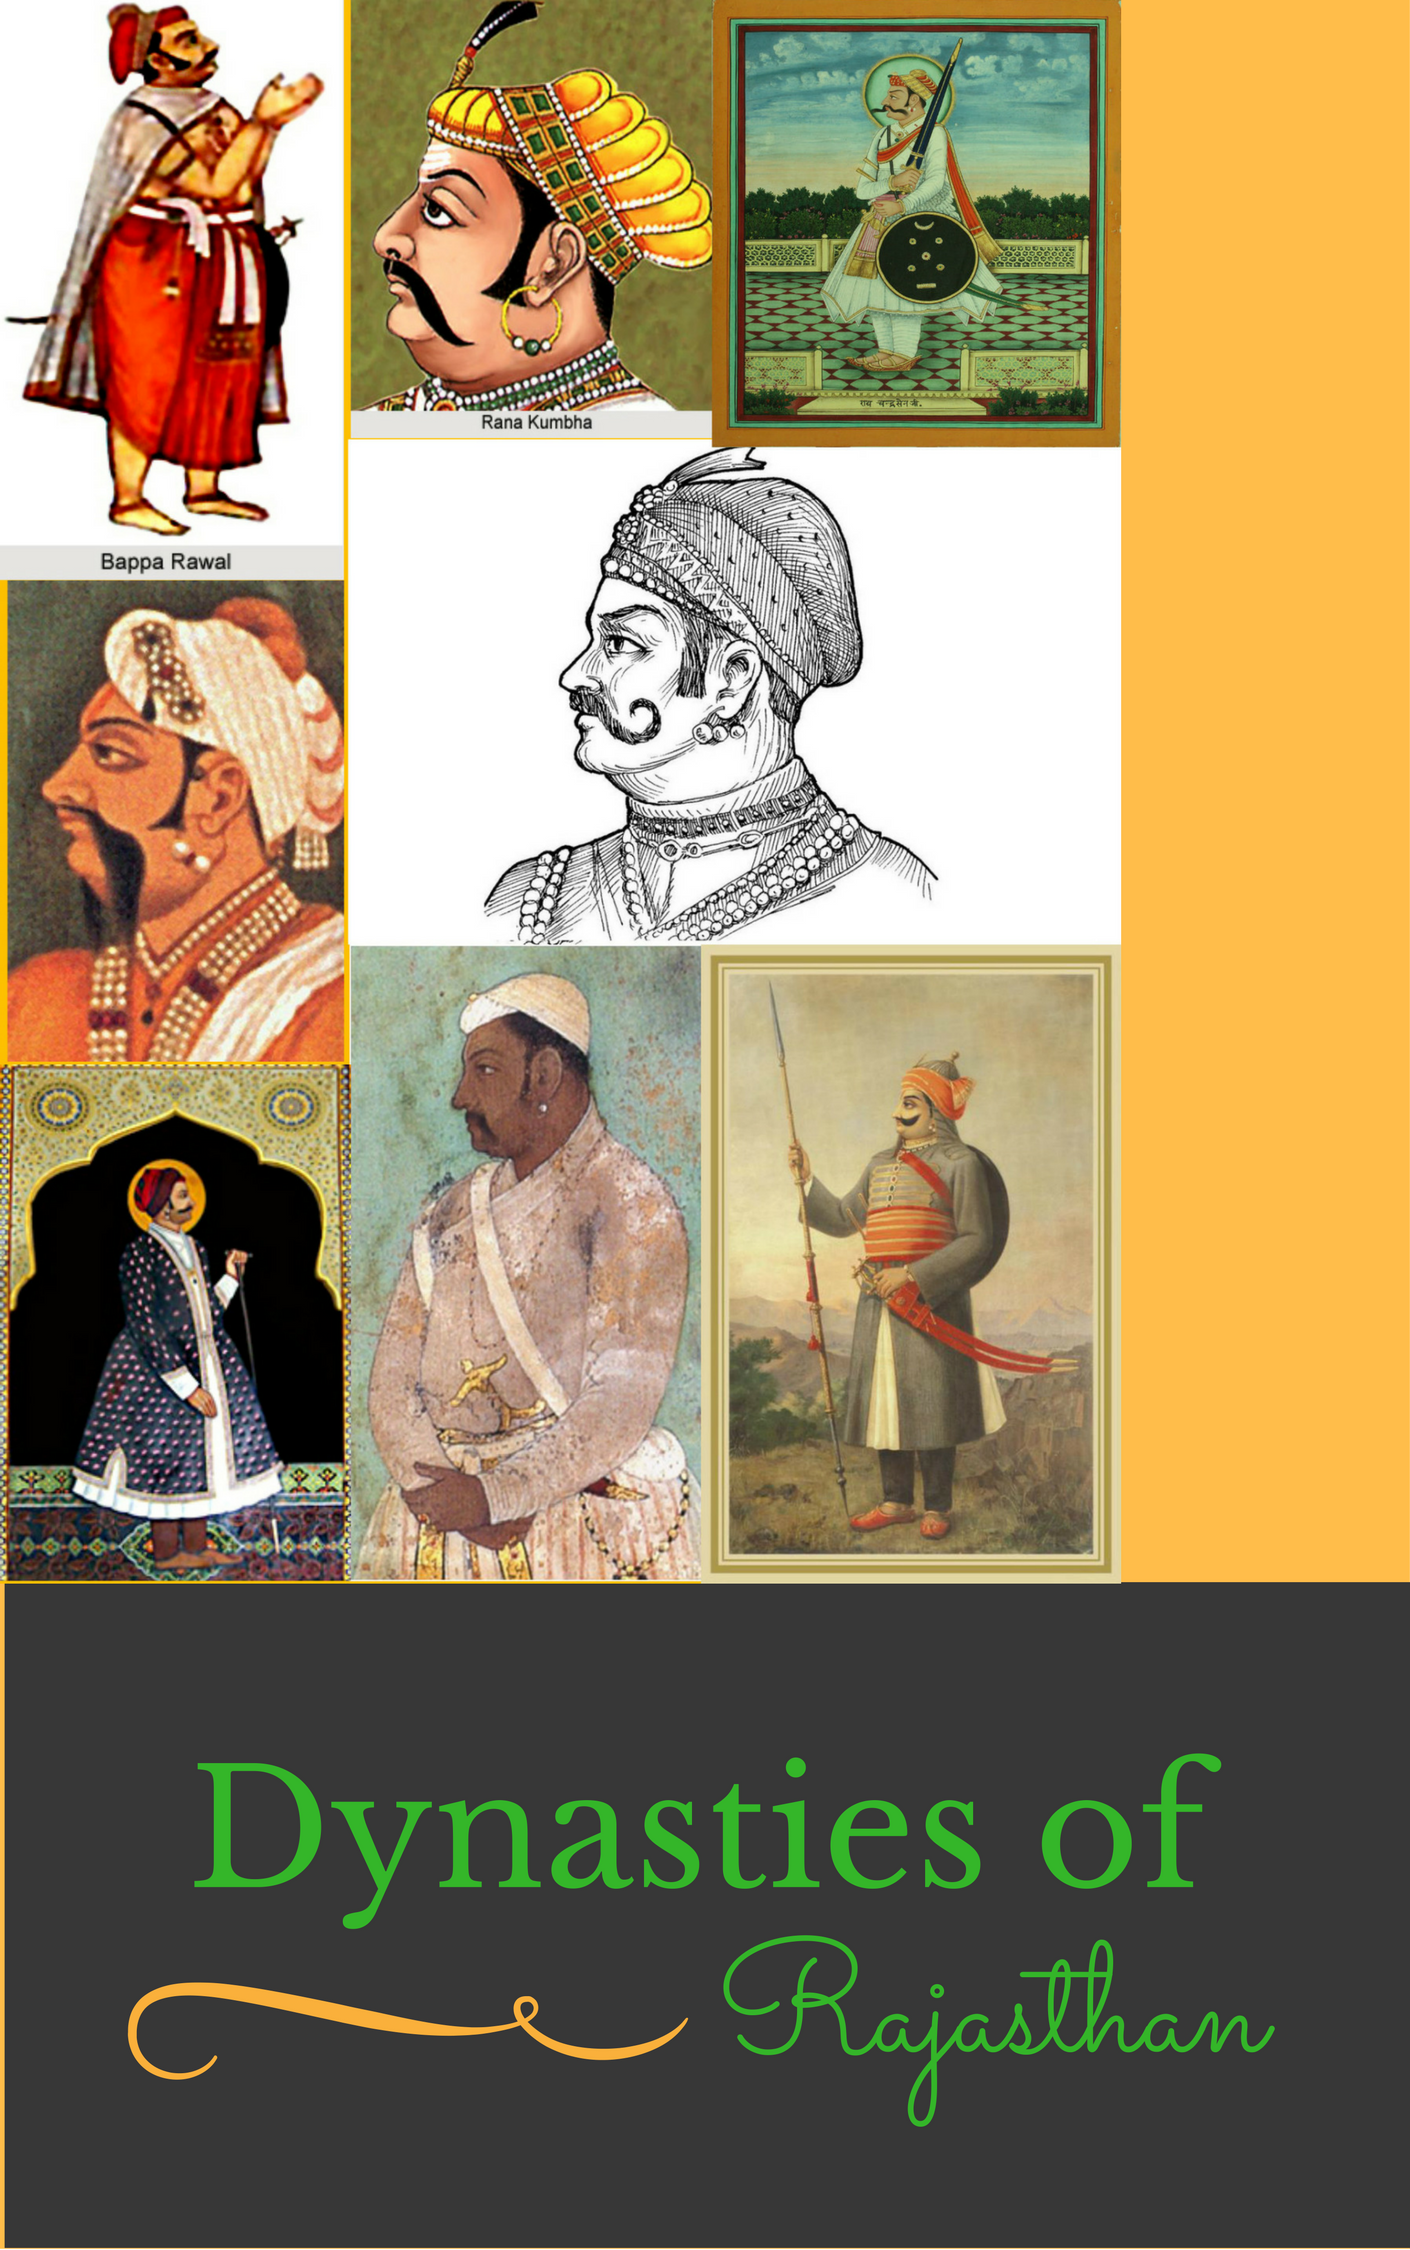 Important Dynasties of Rajasthan Image